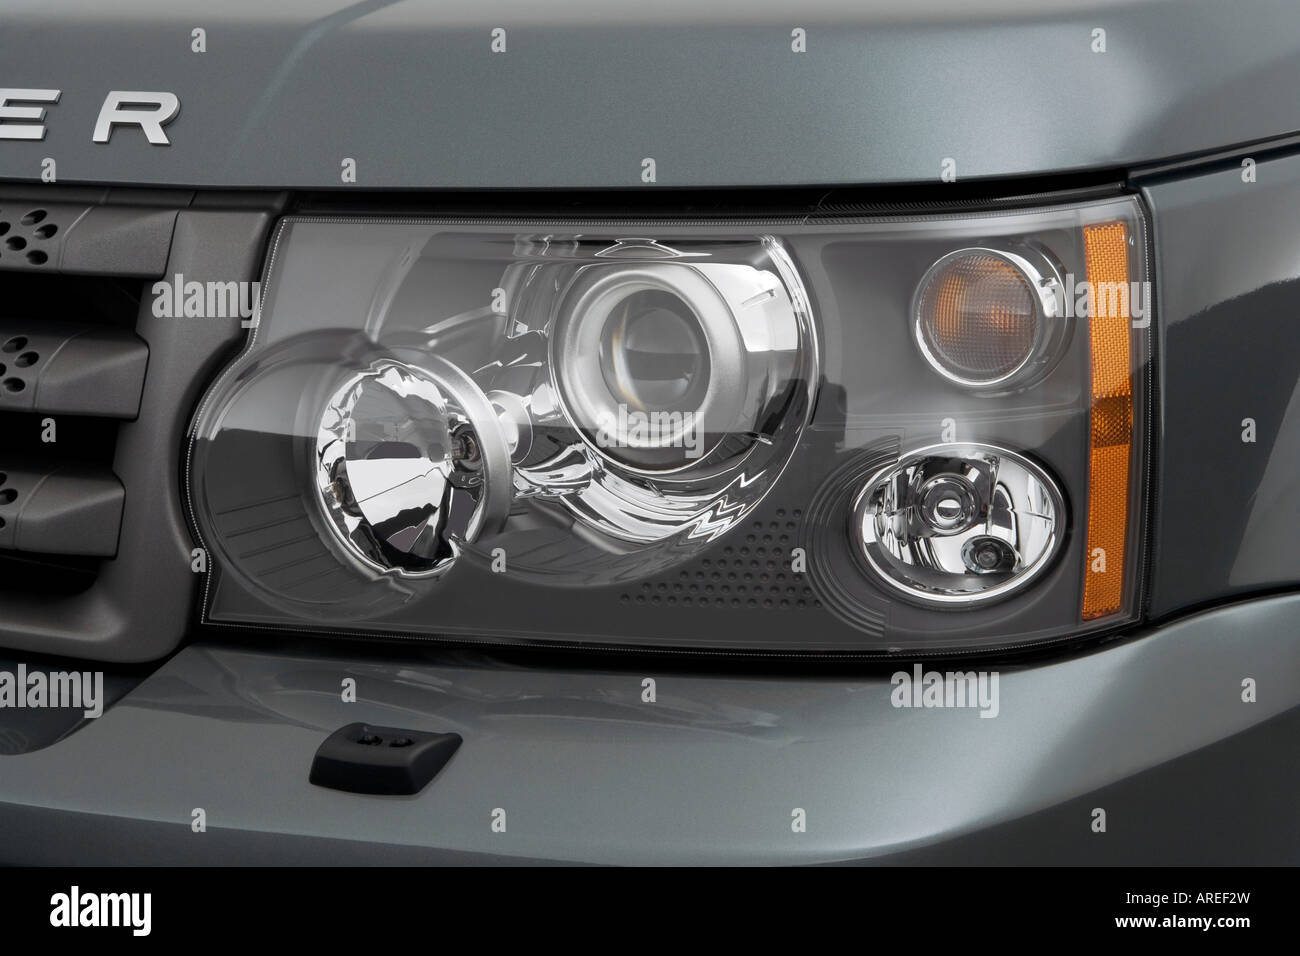 https://c8.alamy.com/comp/AREF2W/2006-land-rover-range-rover-sport-hse-in-green-headlight-AREF2W.jpg